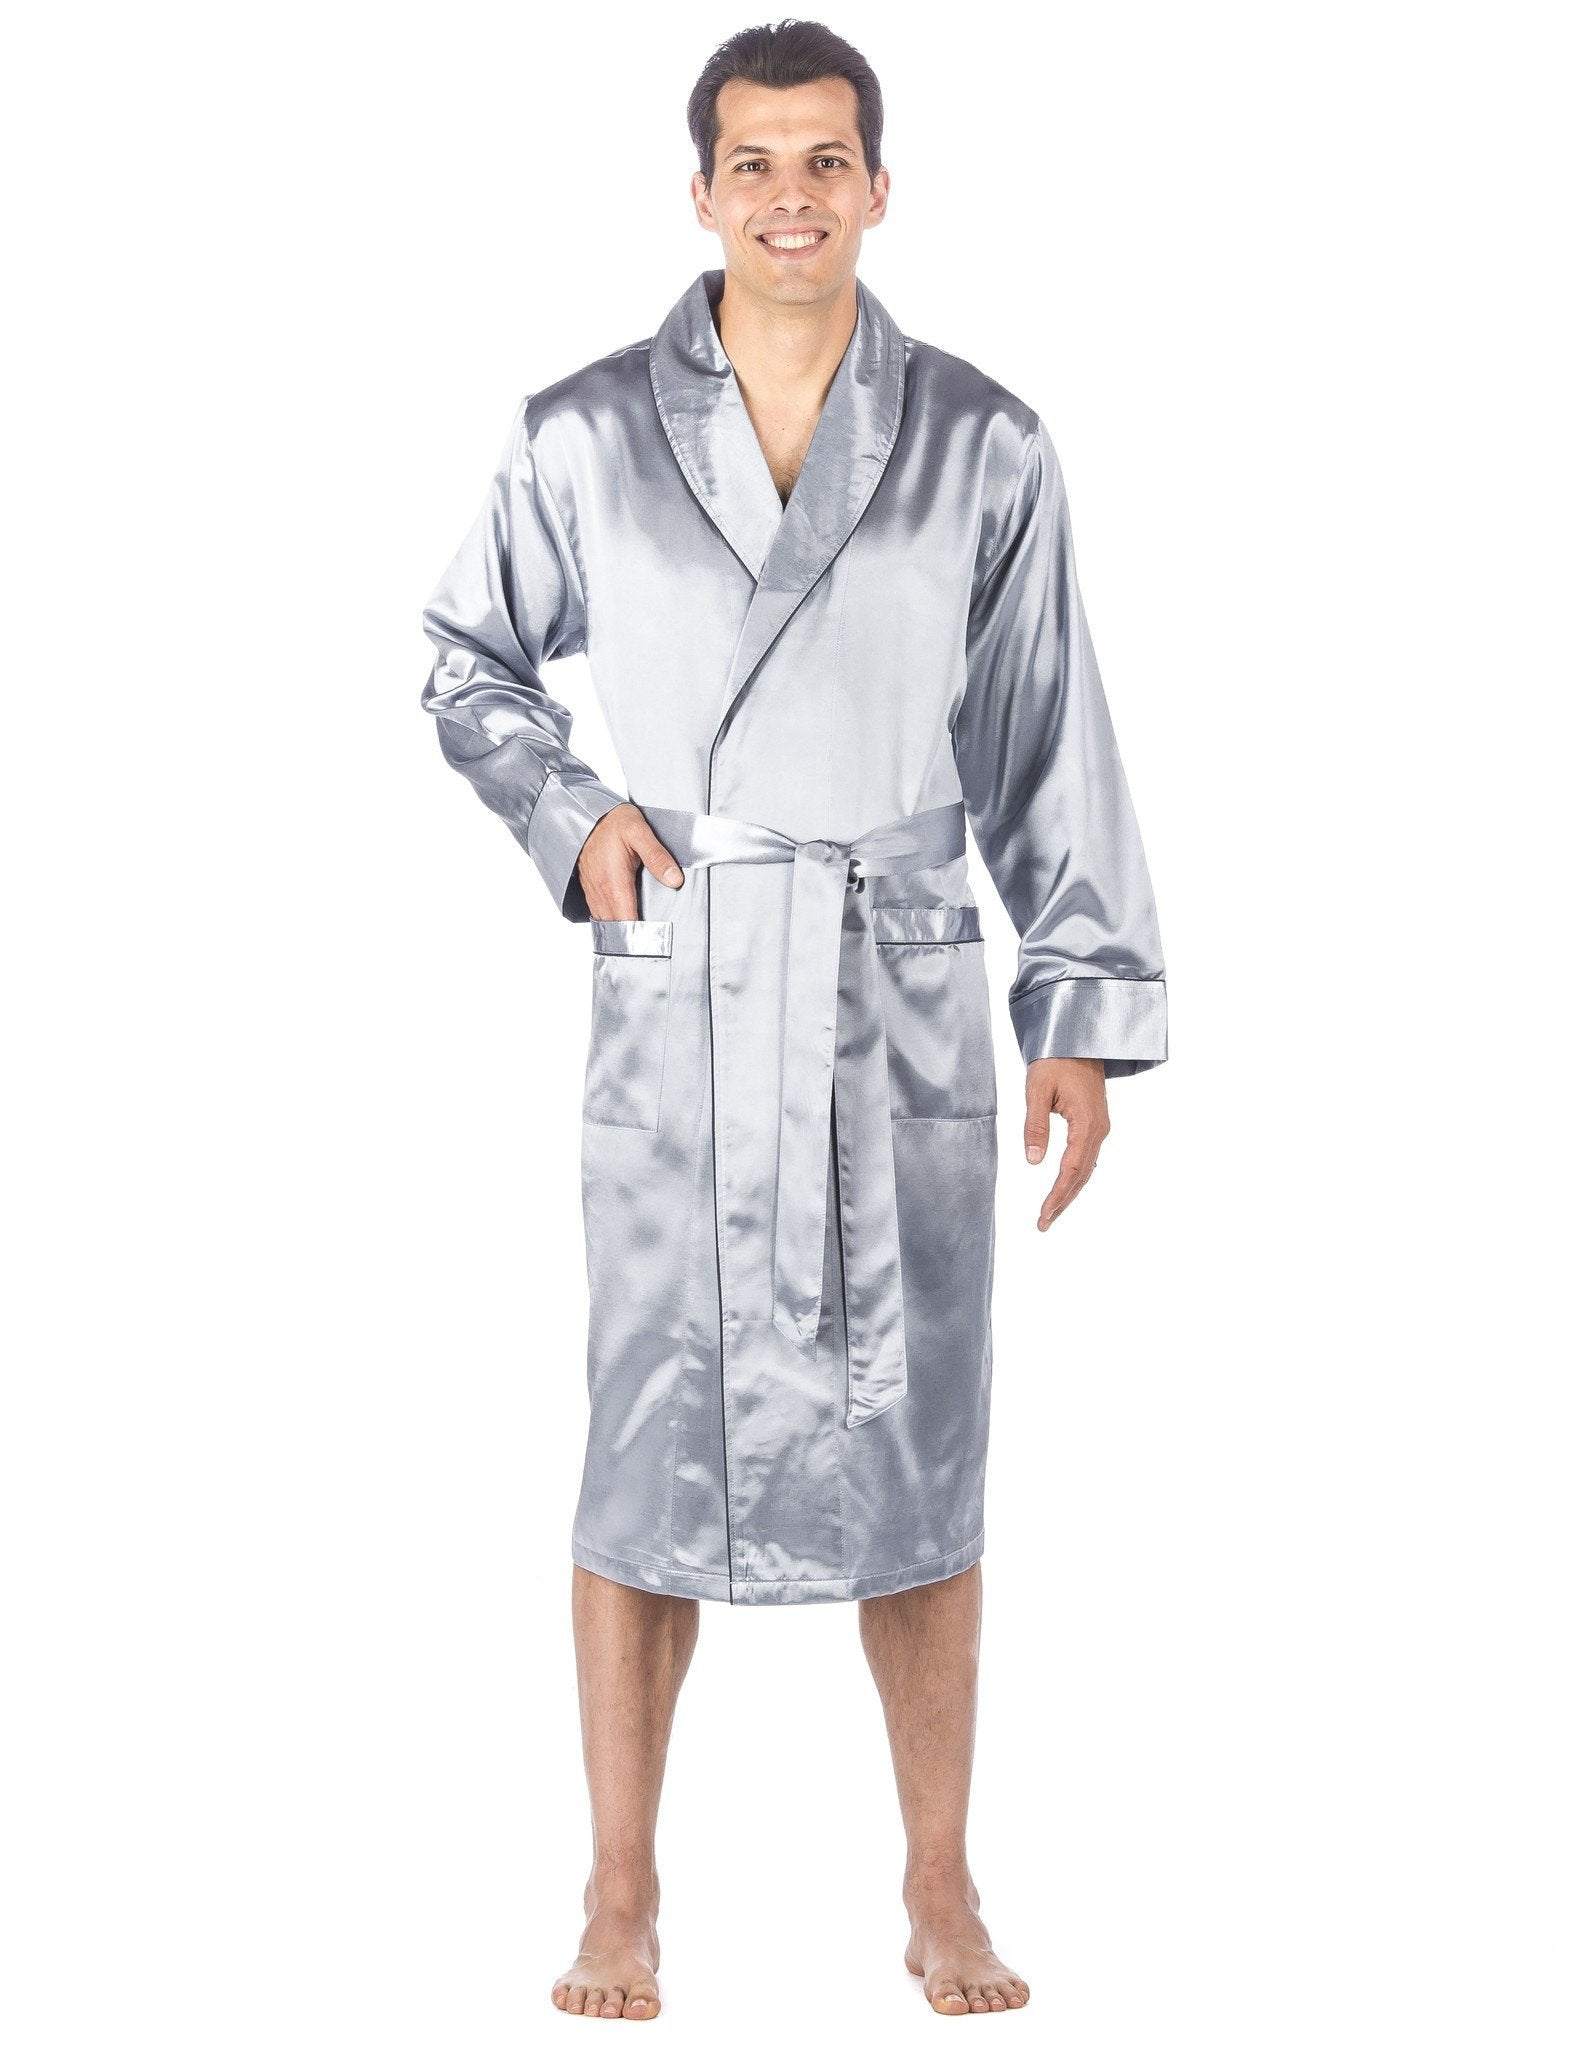 Men's Premium Satin Robe - Solid Light Blue